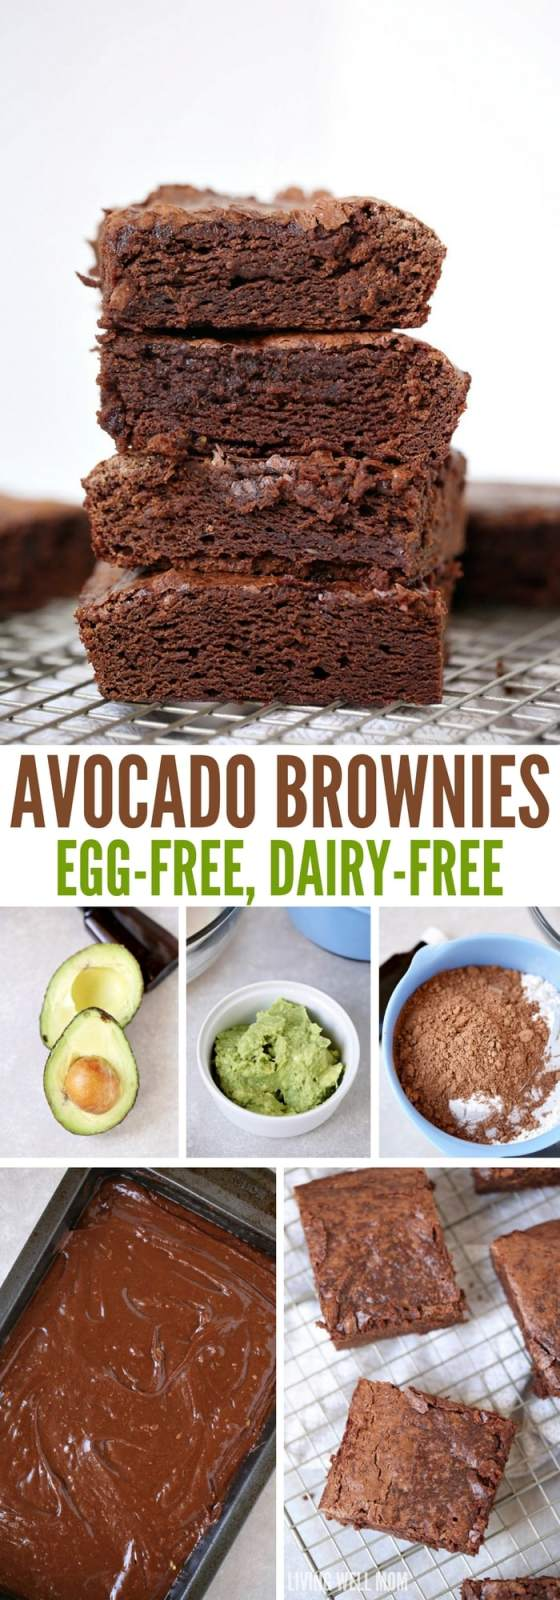 Super-Moist Avocado Brownies are mouthwateringly delicious and so easy to make! Kids love this egg-free brownie recipe too; your whole family will enjoy this chocolate dessert. #brownies #avocado #eggfree #dessert #easyrecipe #chocolaterecipes